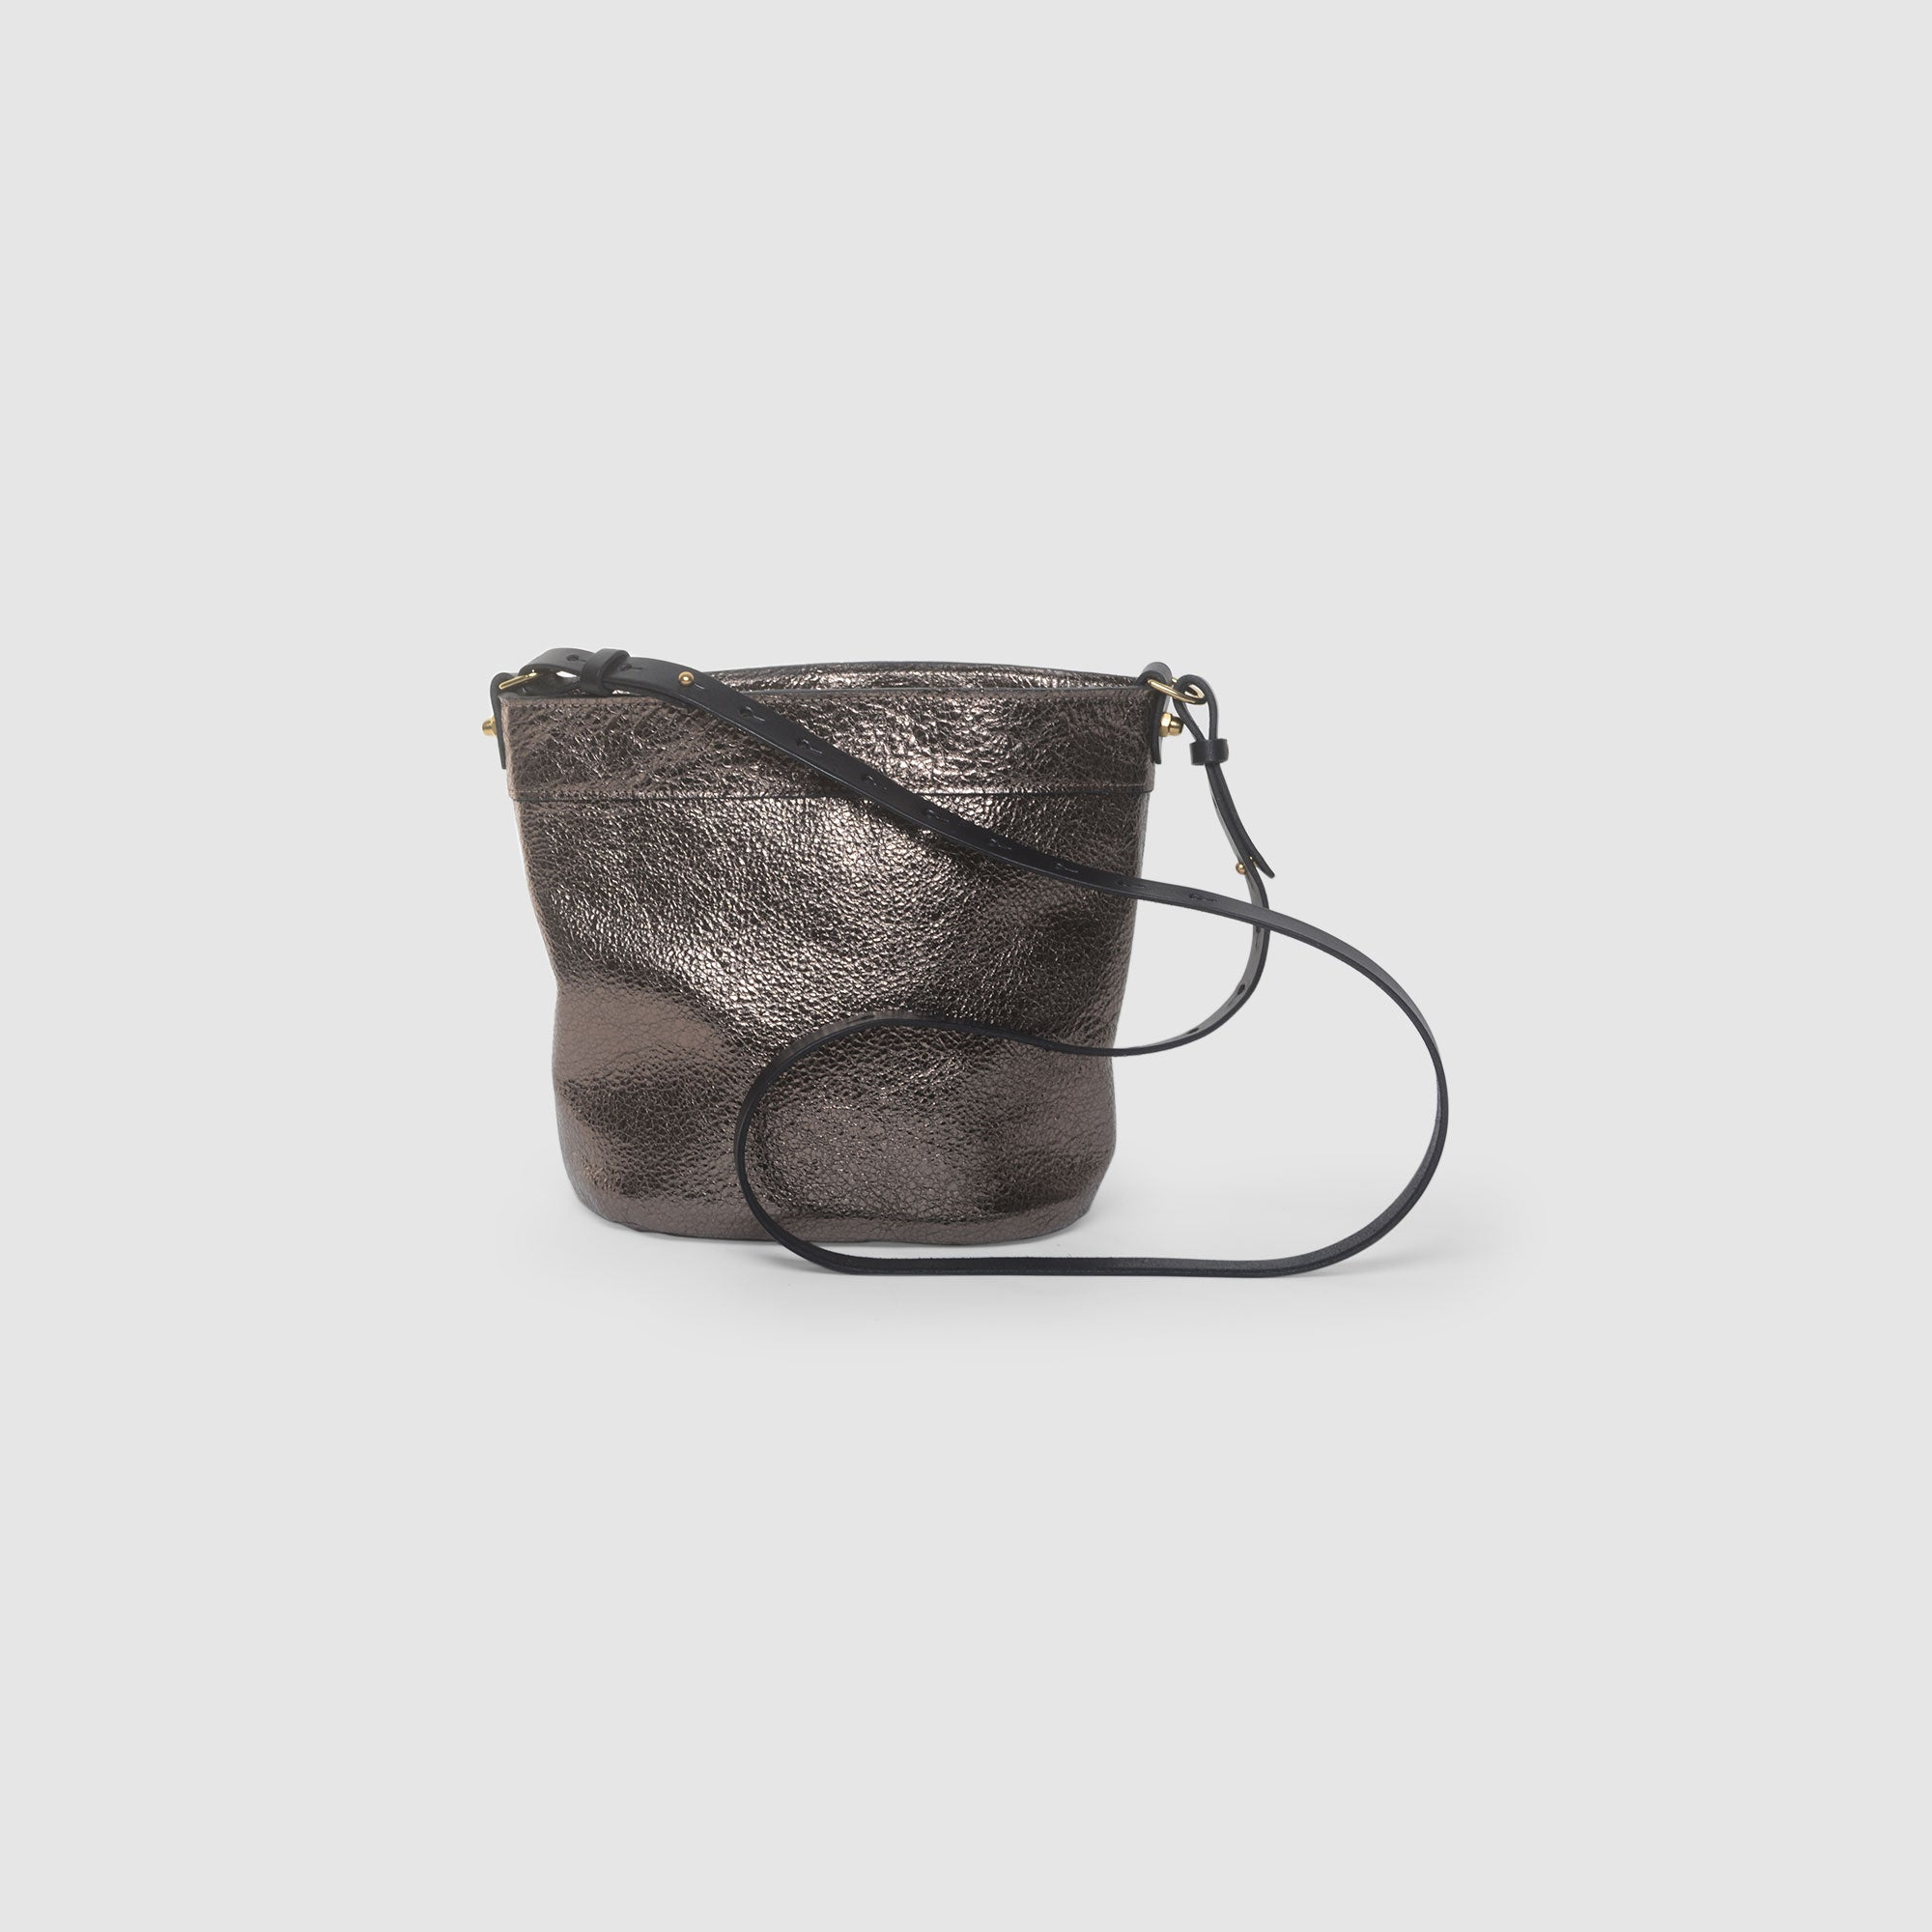 BUCKET BAG // GALACTIC BRONZE